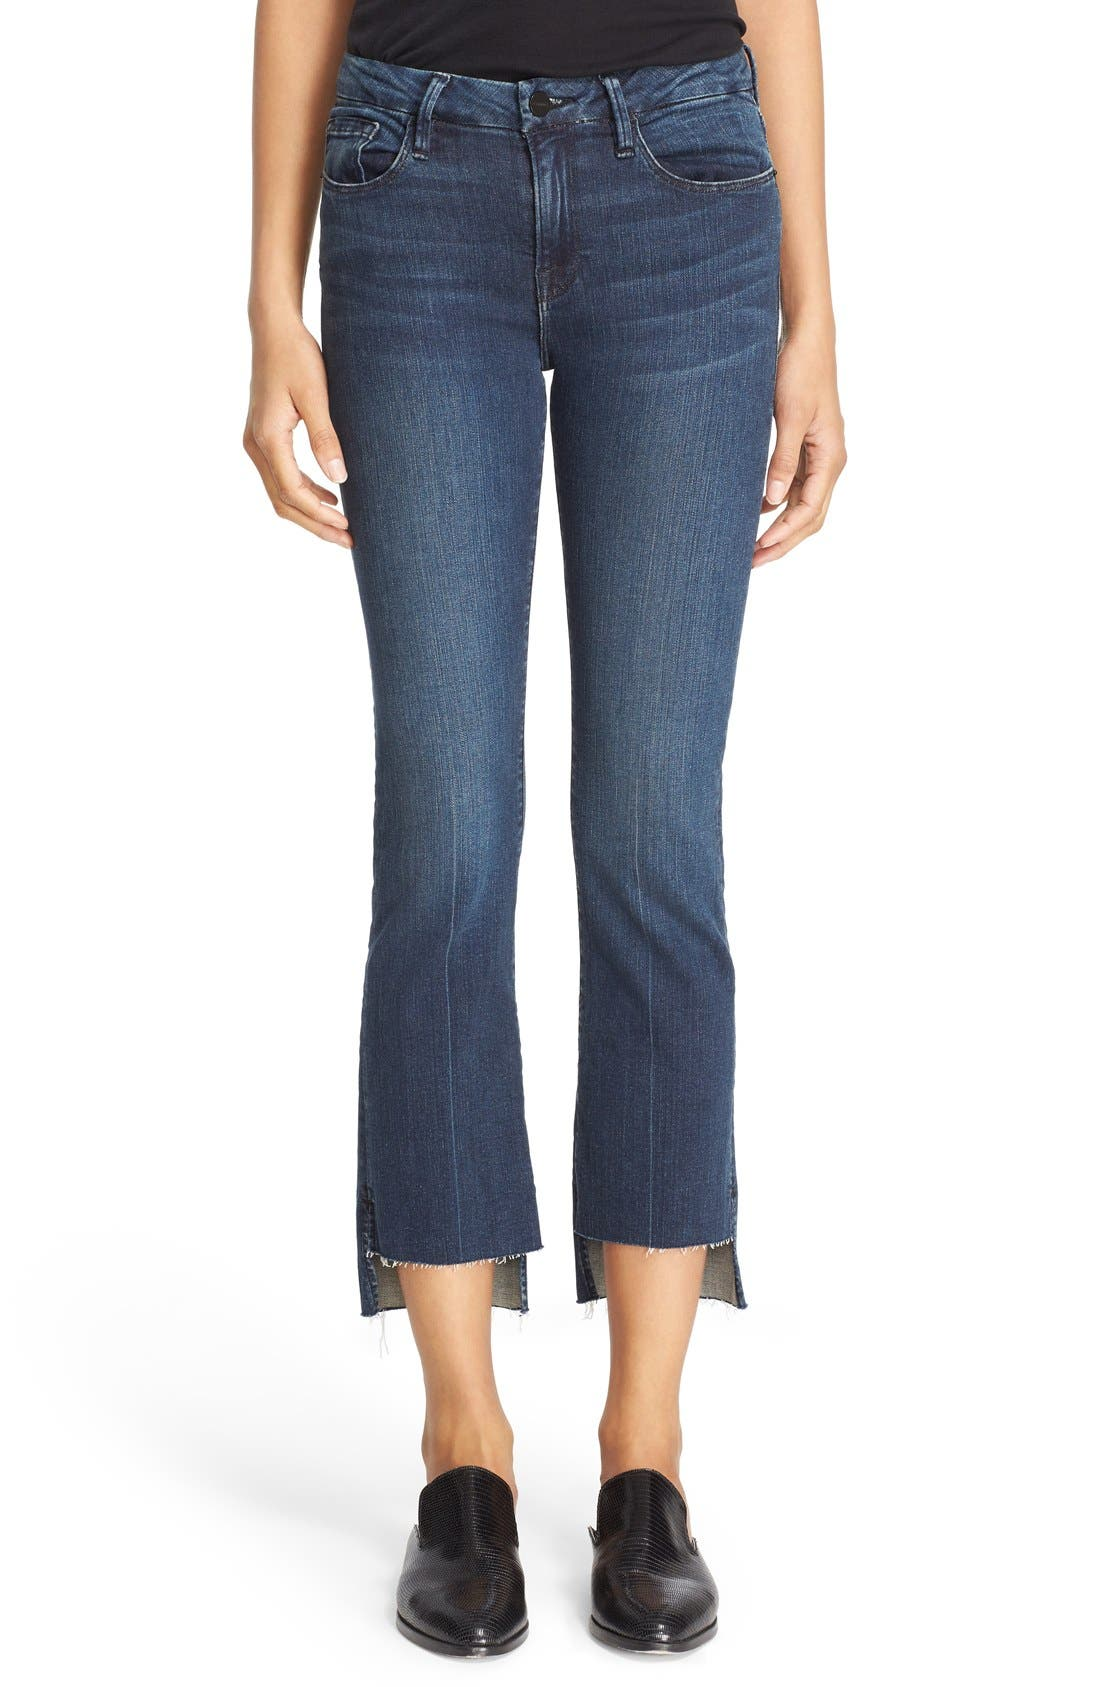 Alternate Image 1 Selected - FRAME 'Le Crop Mini Boot' Staggered Hem Crop Jeans (Topsail)